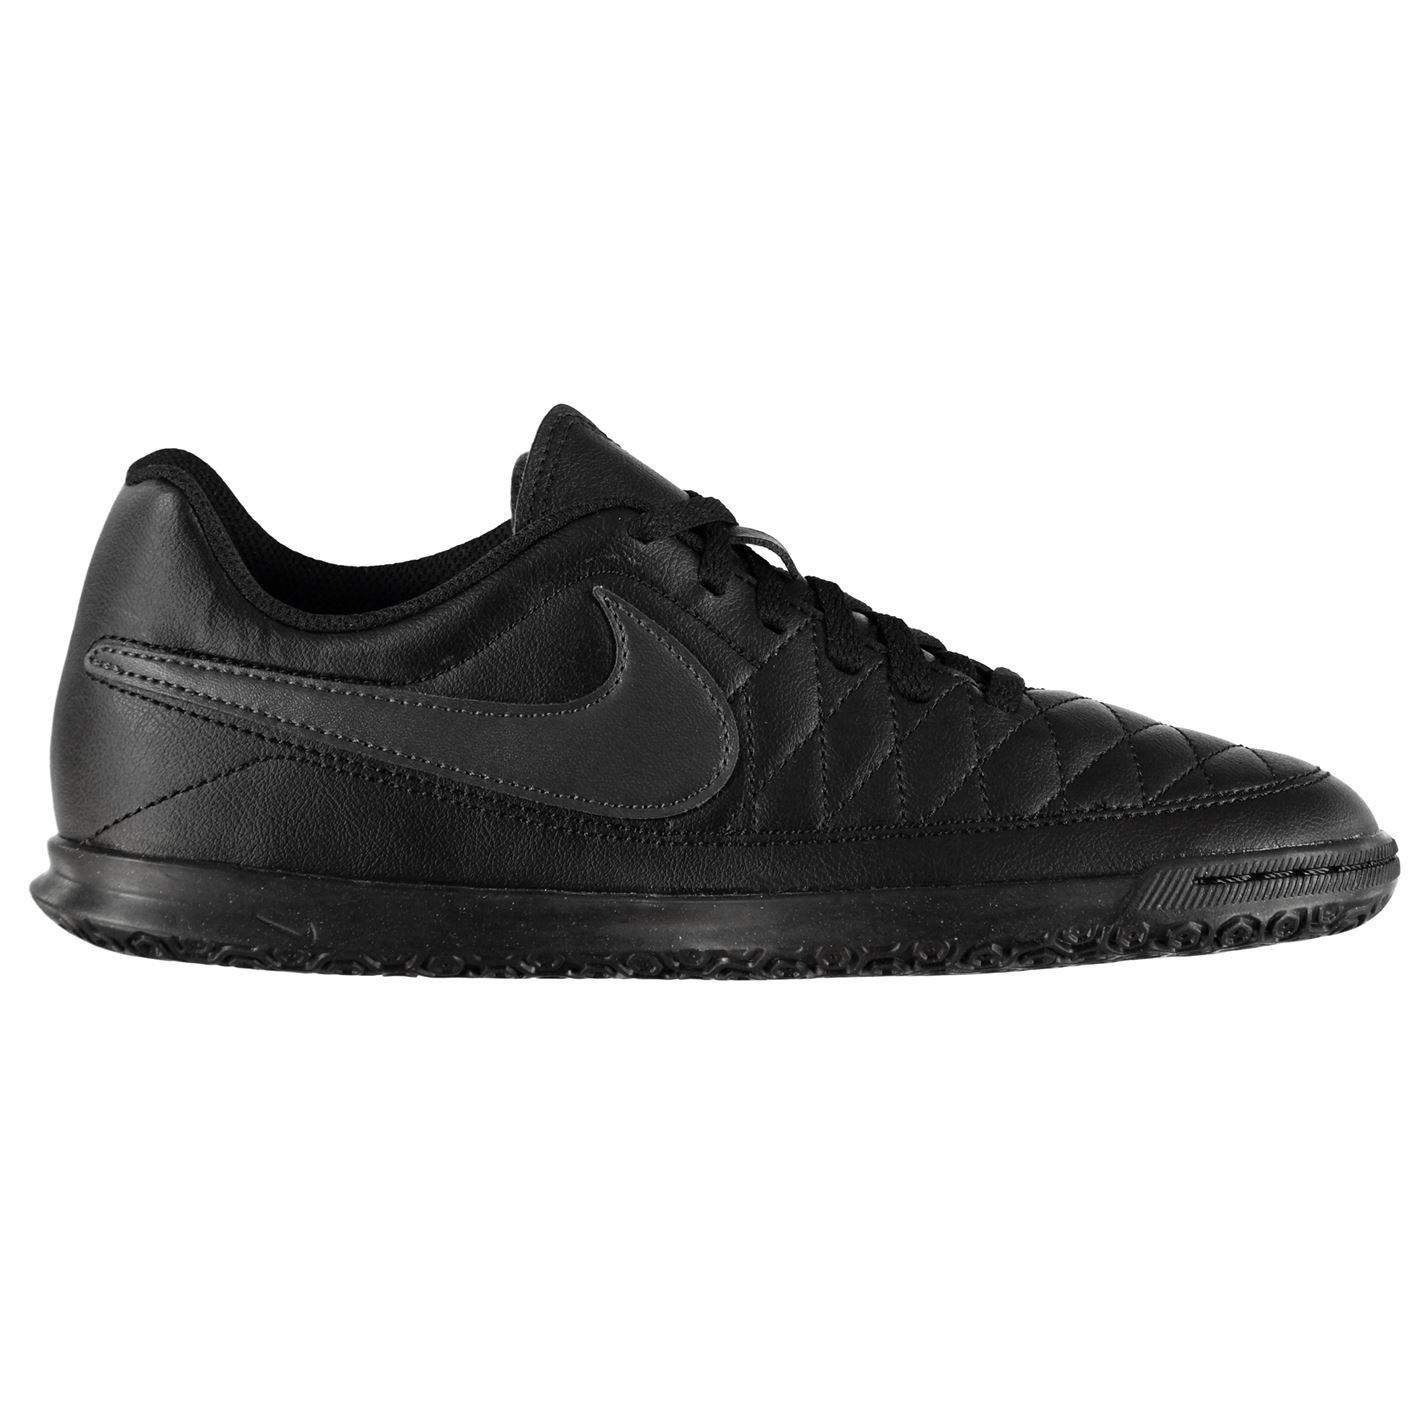 Nike-majestry-Indoor-Football-Baskets-Pour-Homme-Football-Futsal-Chaussures-Baskets-Bottes miniature 3